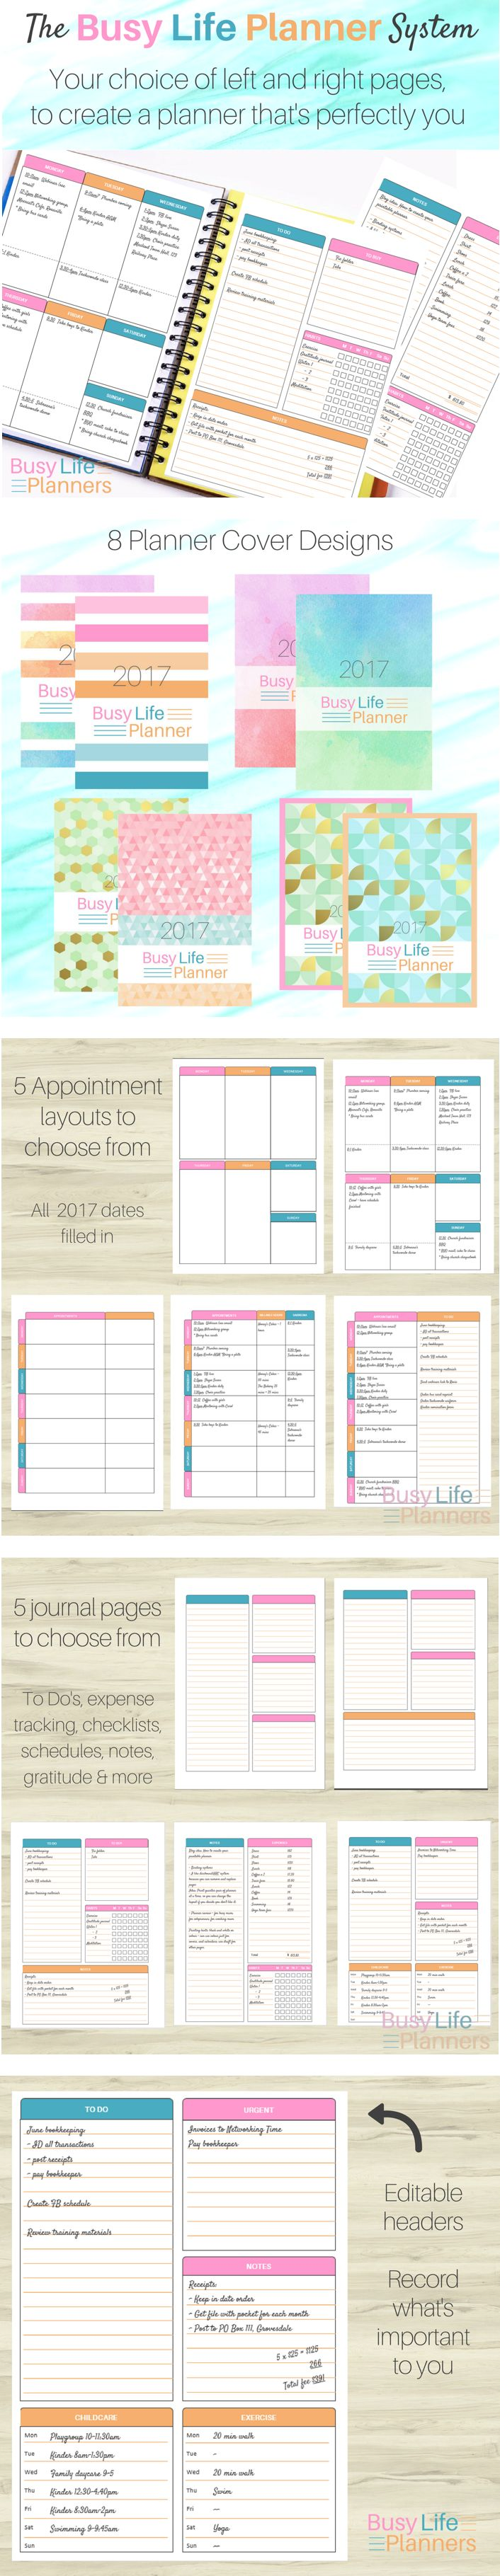 Here's a great idea - a 2017 printable weekly planner that has a whole choice of layouts, and editable headers. So you can customize it just the way you want it. By Busy Life Planners